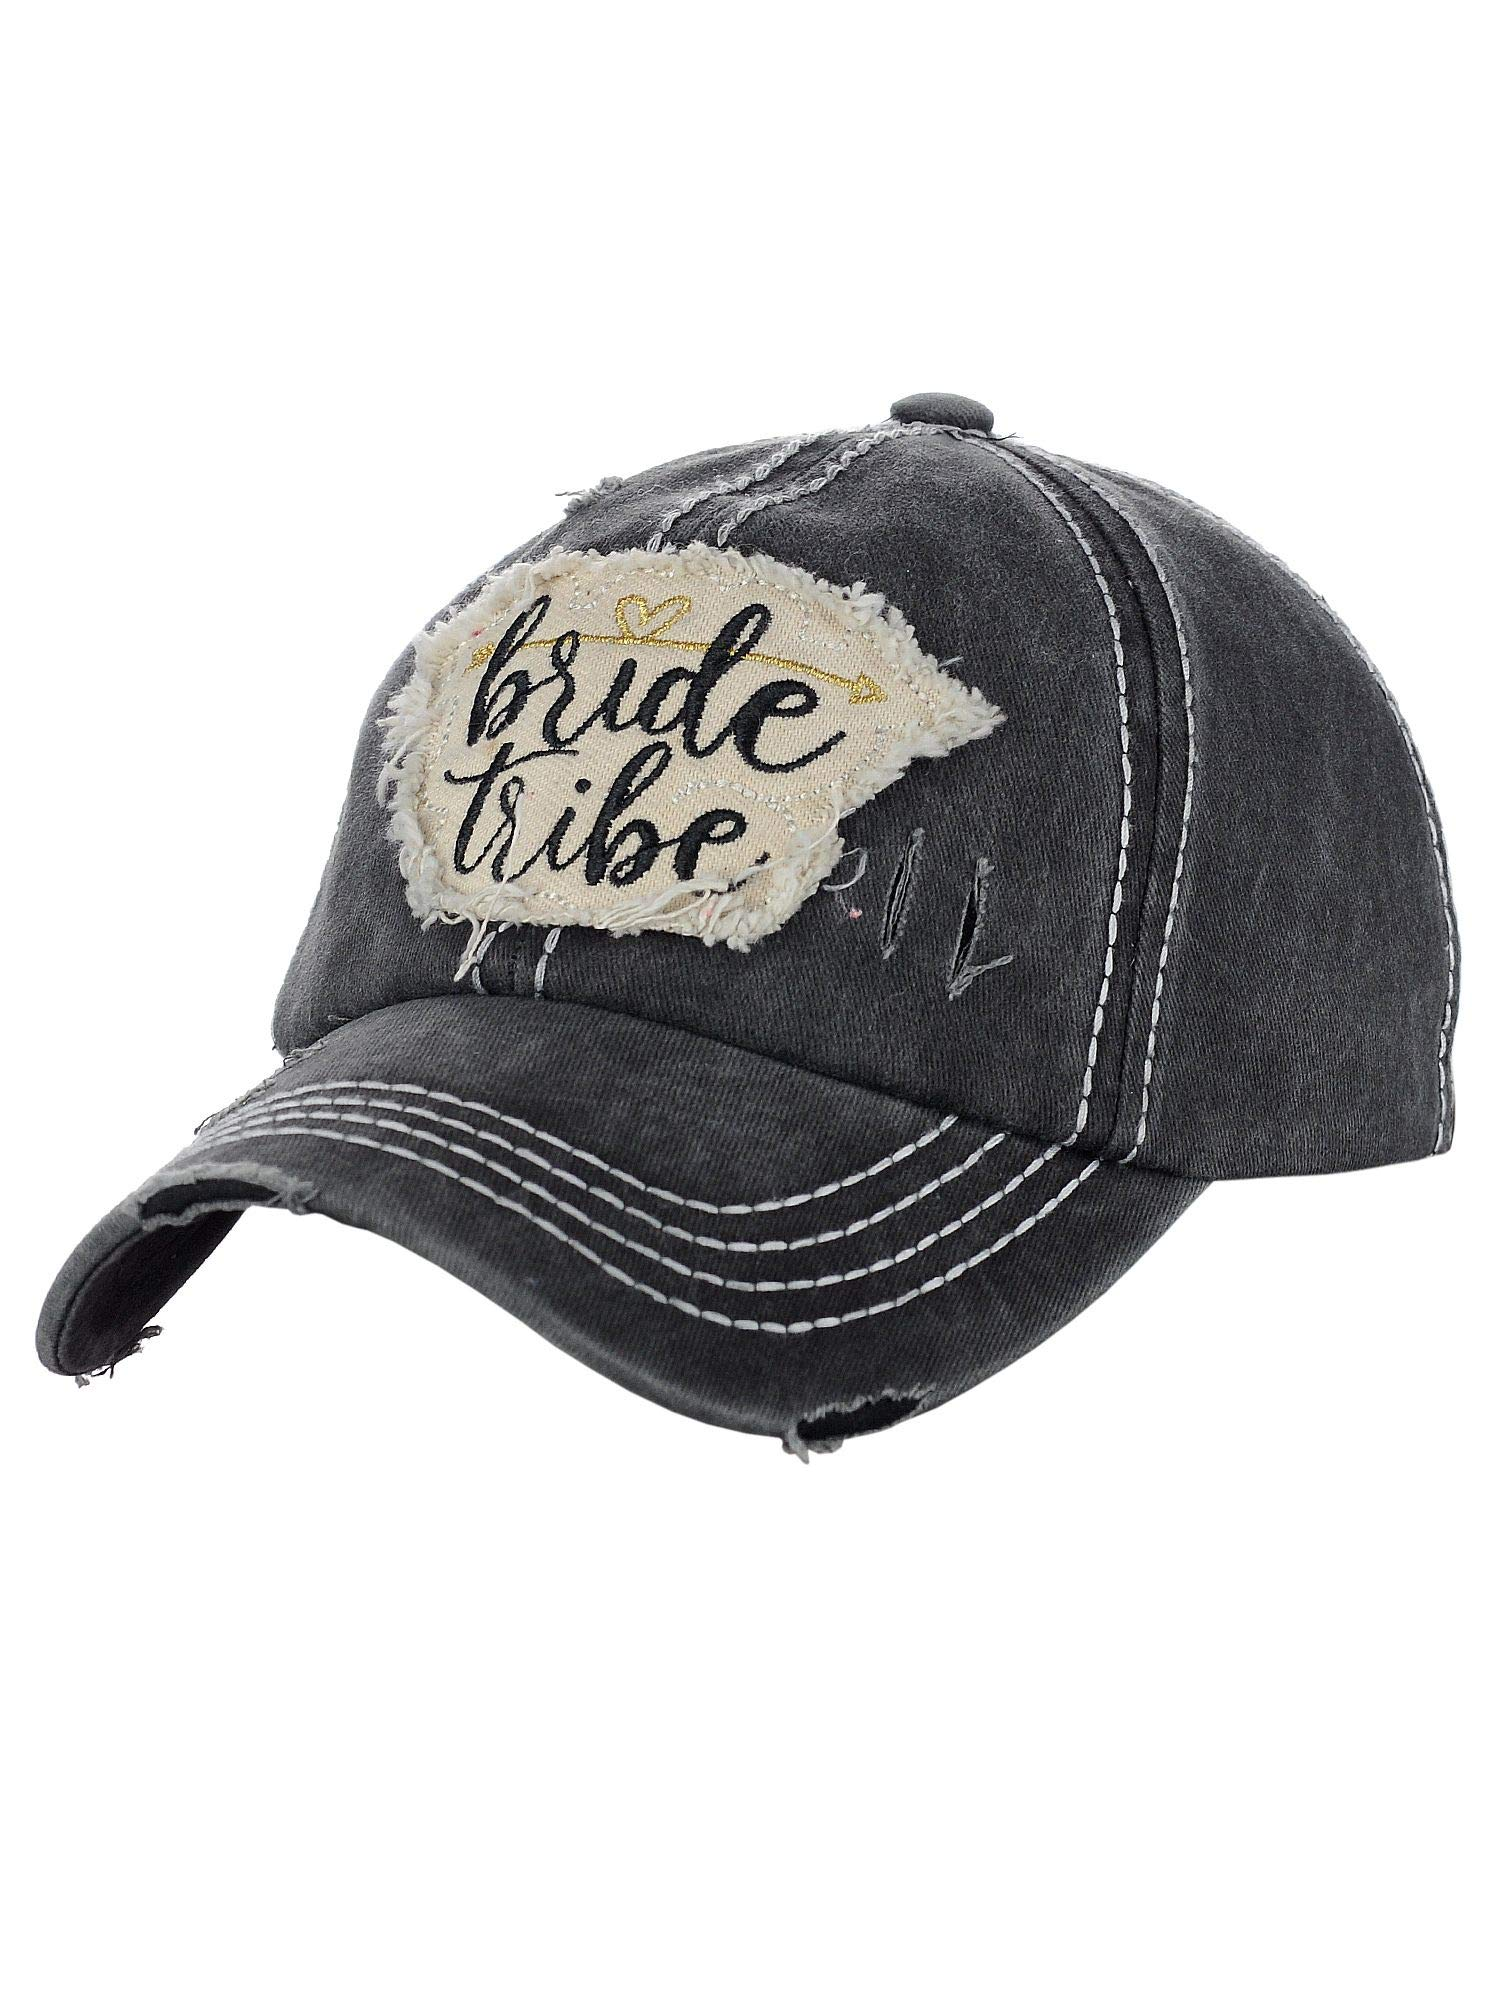 C.C Women's Distressed Vintage Embroidered Patched Bridal Shower Baseball Cap